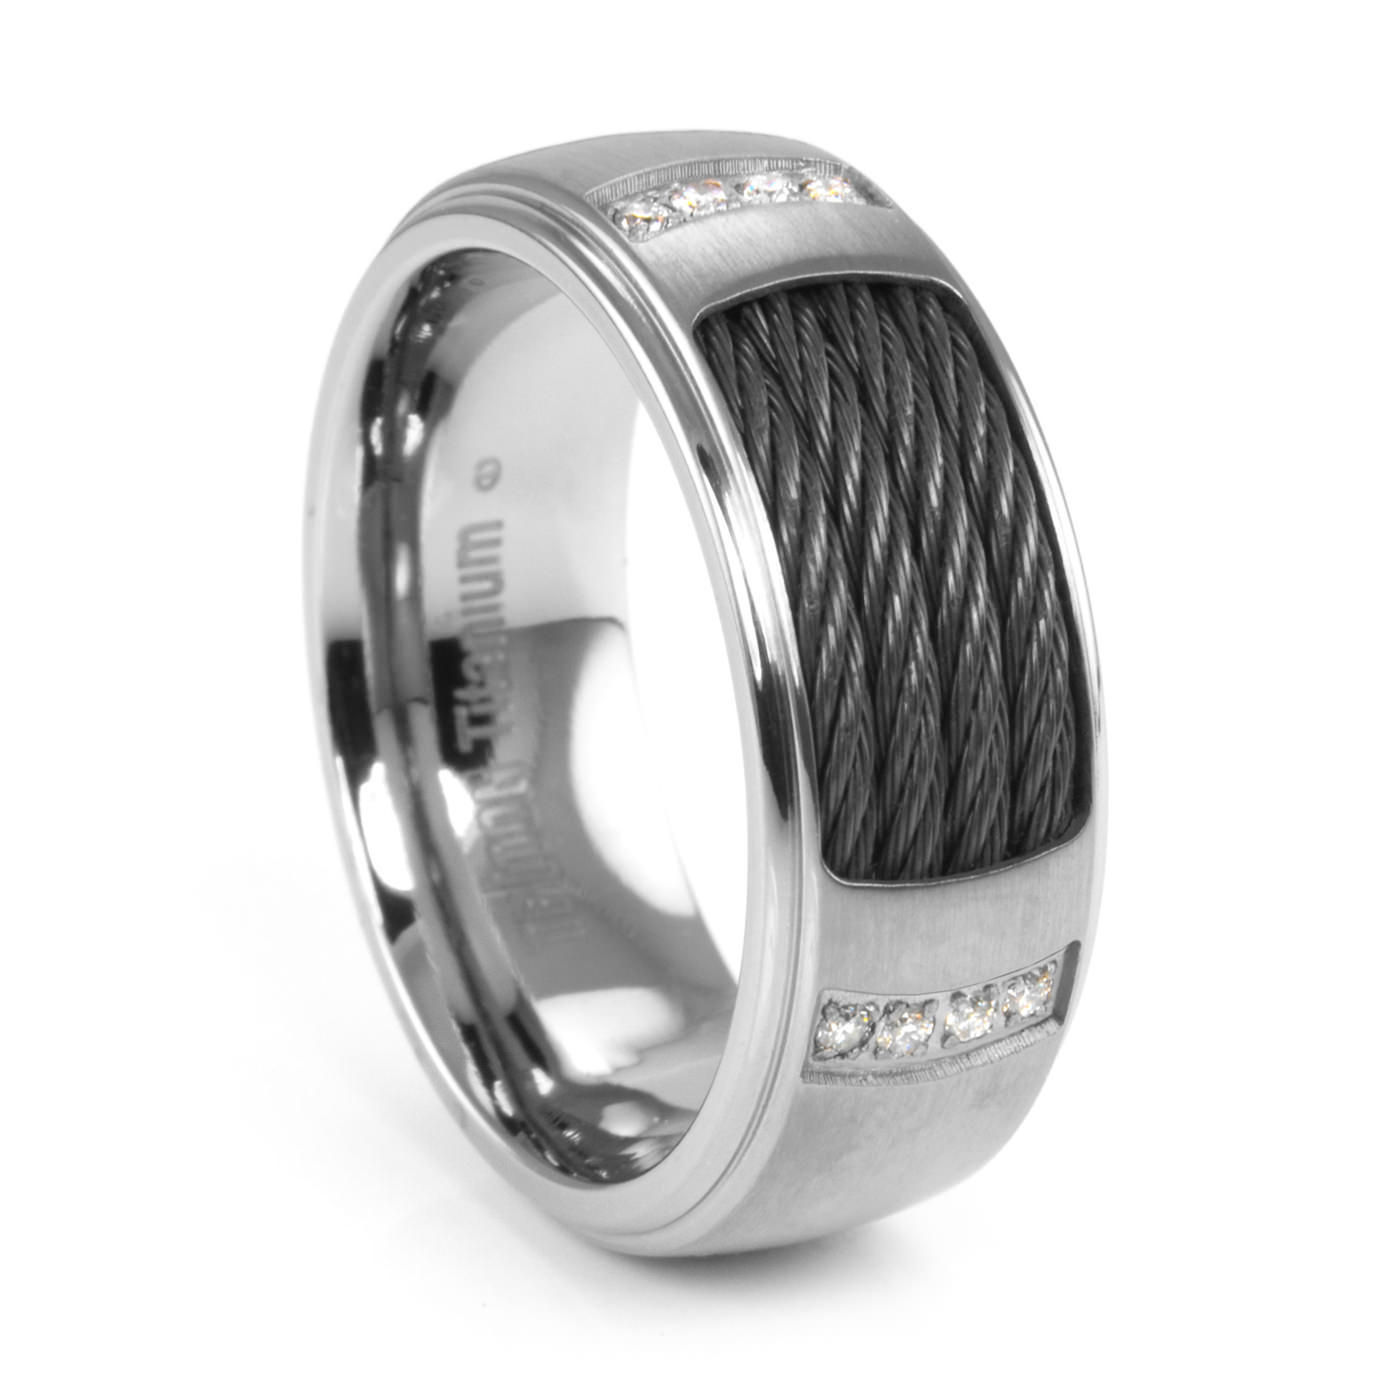 REID 8mm Mens Titanium Diamond Ring Triton Titanium Cable Rings